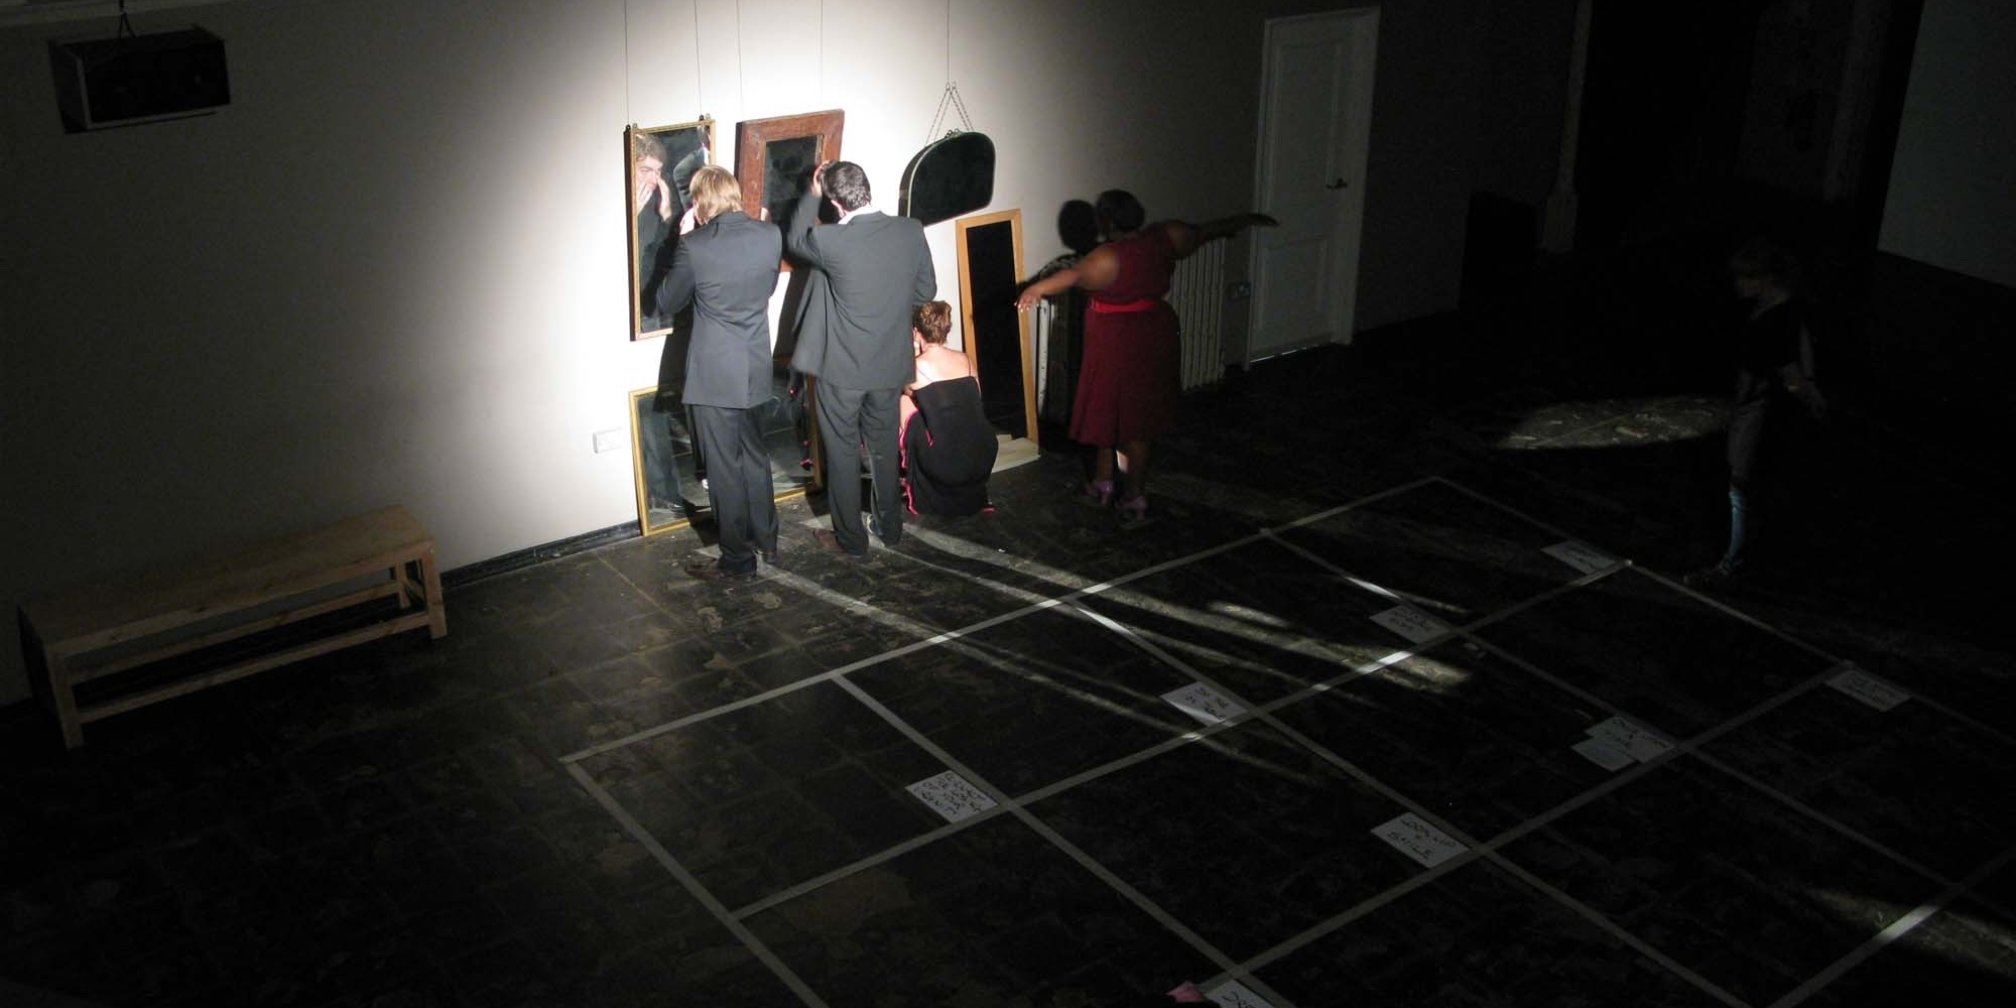 If I walk through this door will I find heaven?, 2009 at Zabludowicz Collection, London